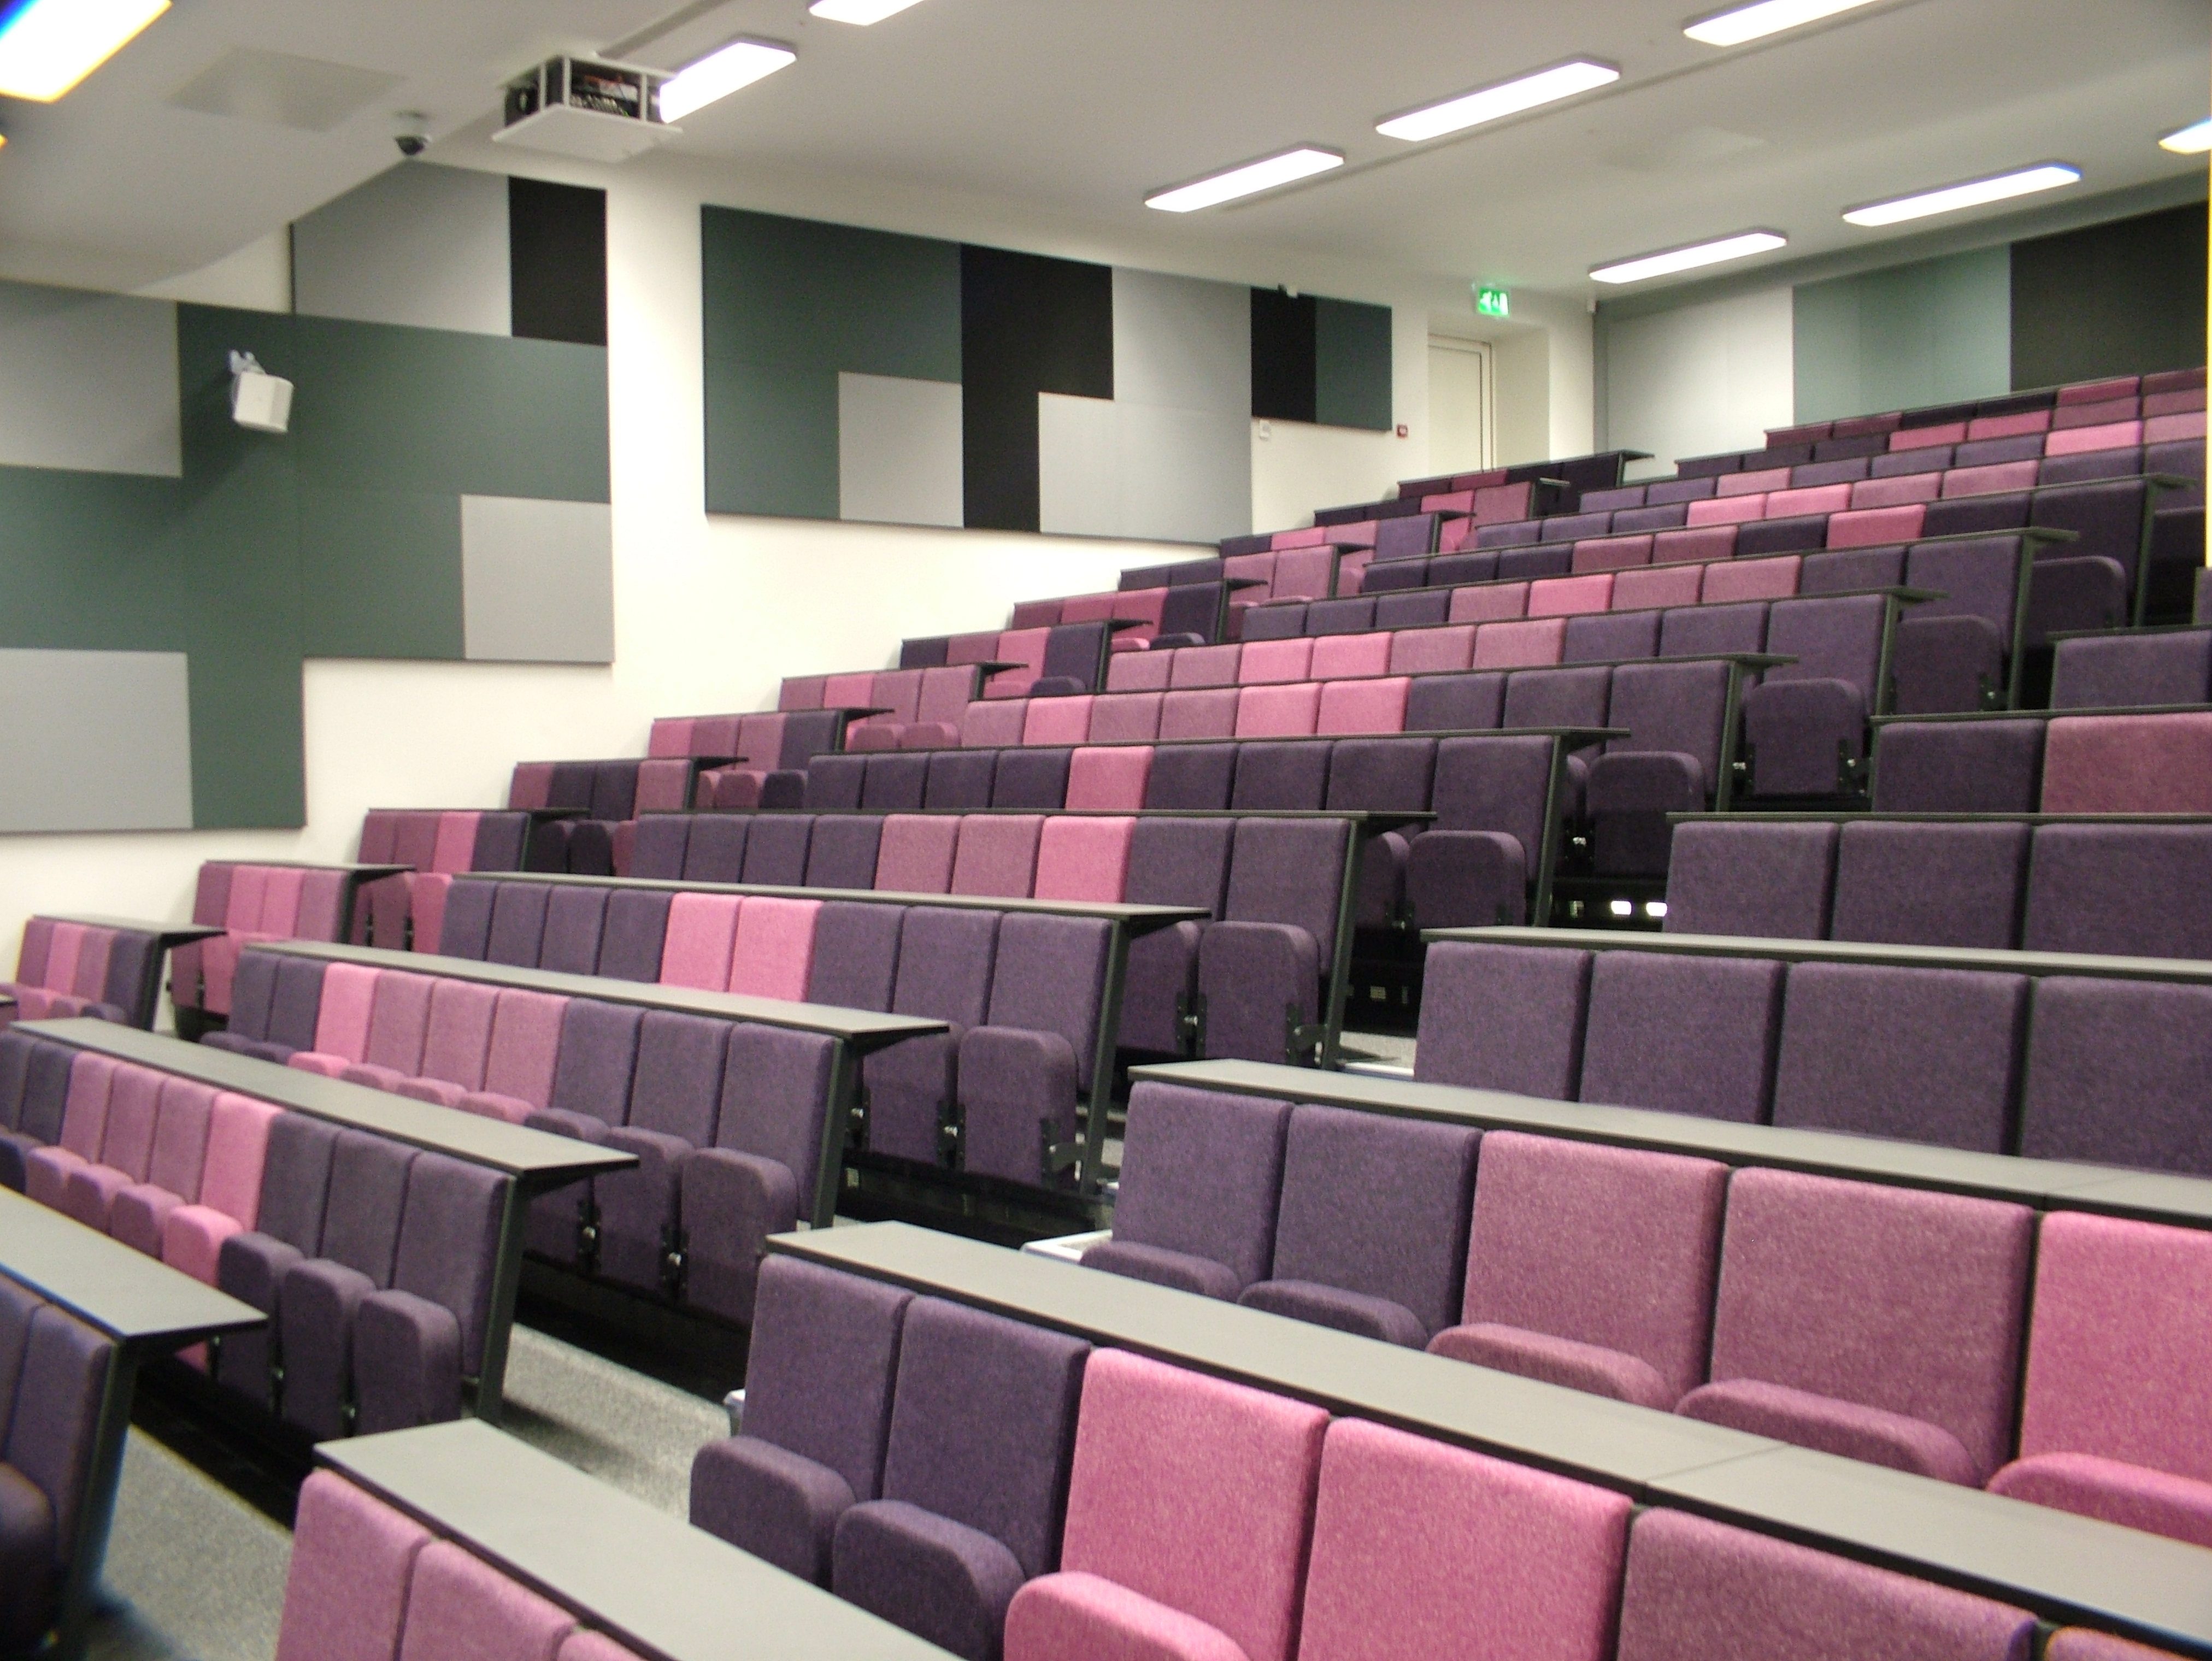 Evertaut Diploma lecture theatre seating in shades of pink and heather colours